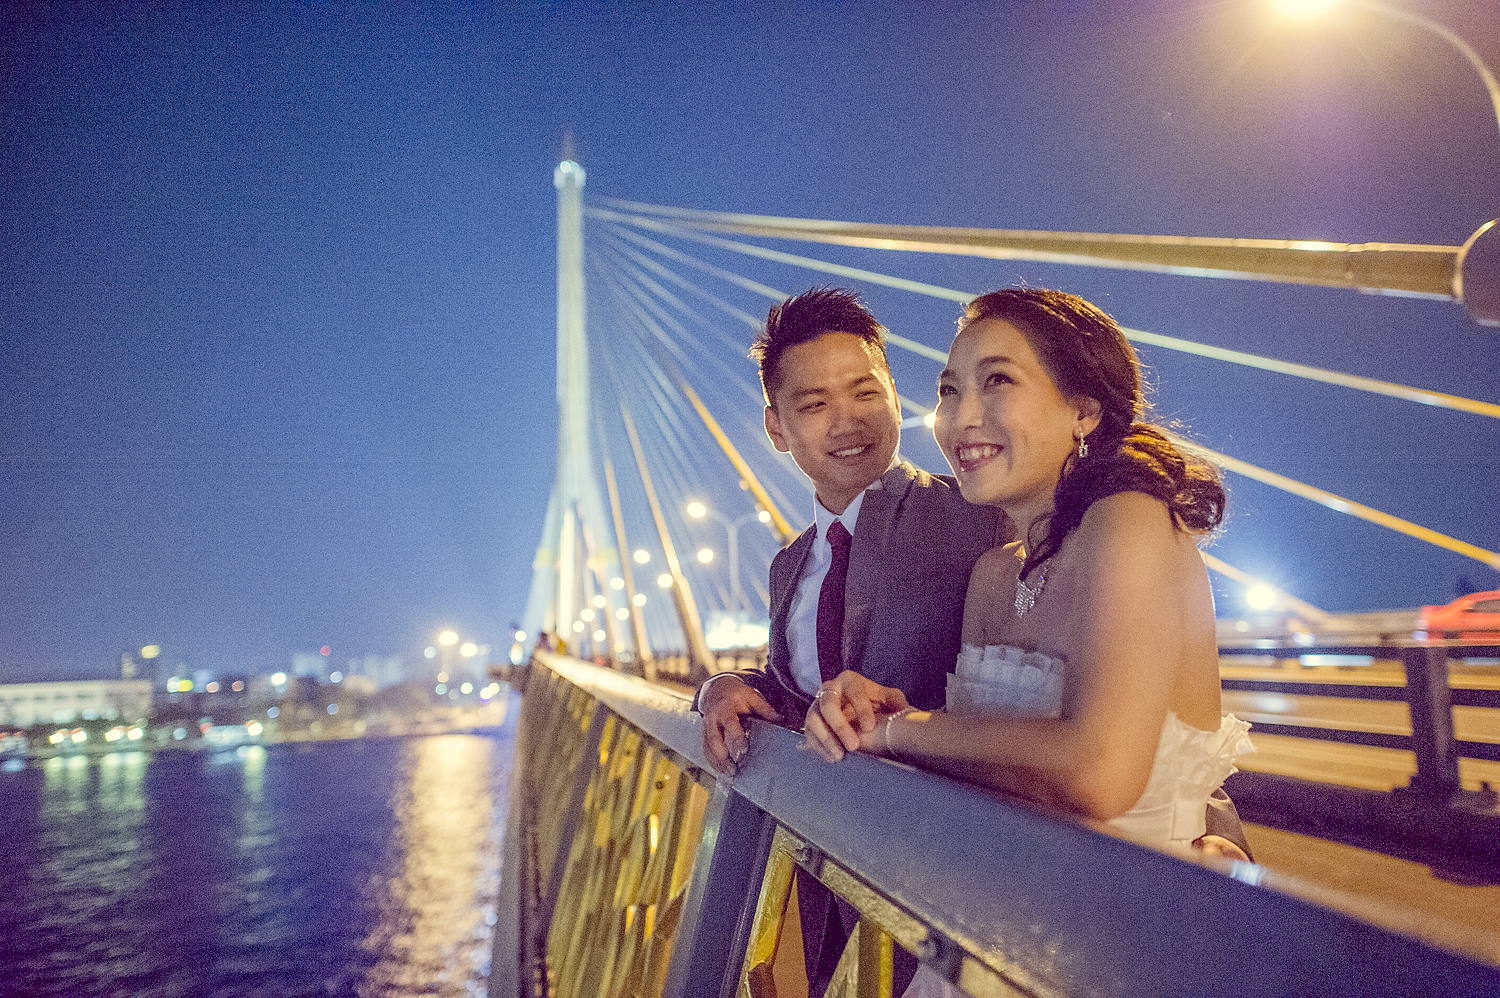 Photo of the Day: Pre-Wedding on Rama VIII Bridge